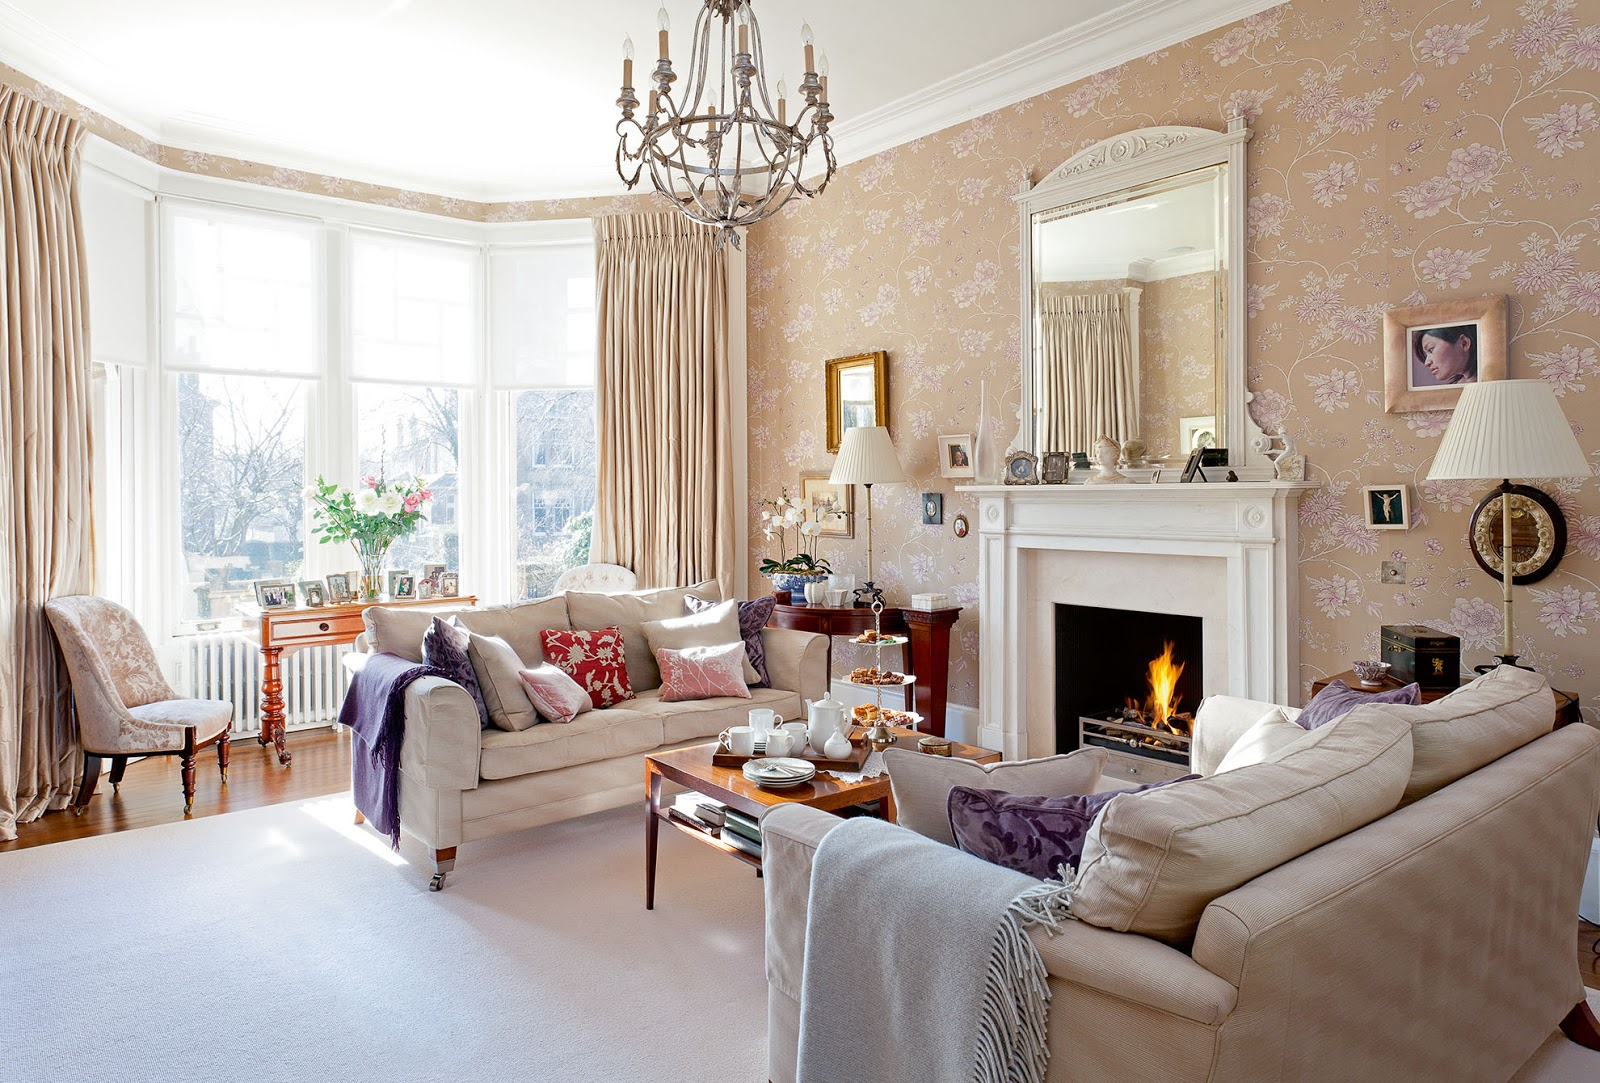 The Edwardian Period Interiors